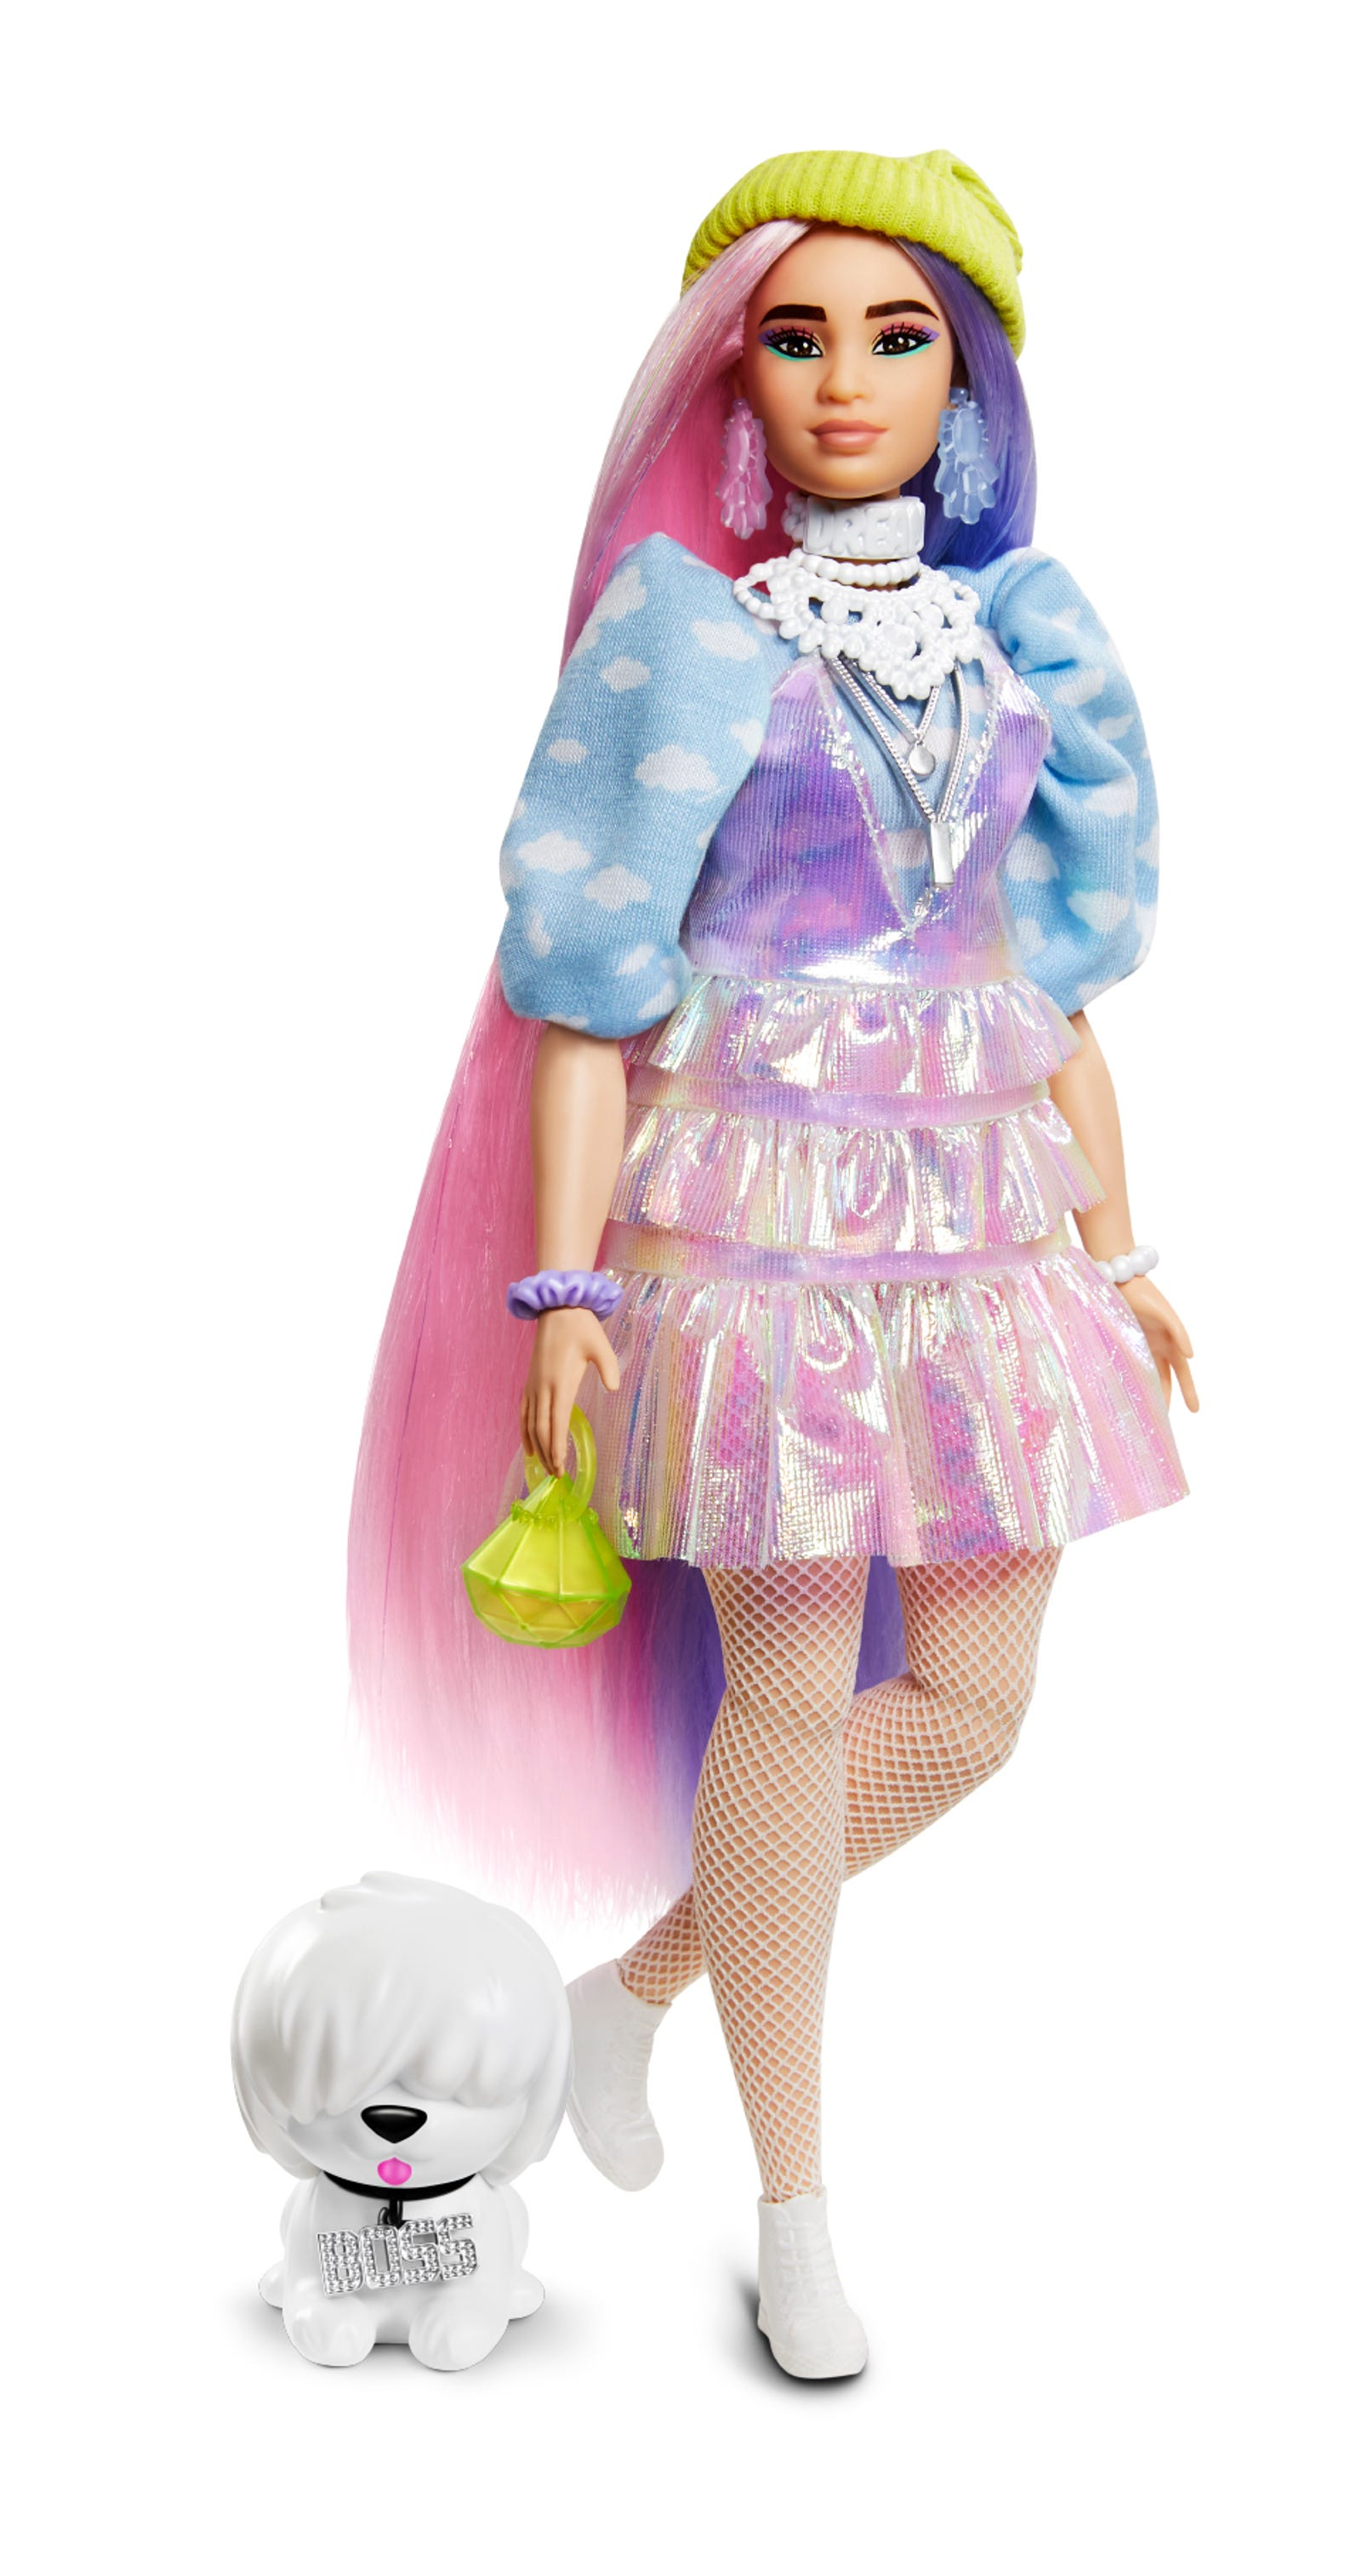 """Described as curvy, this Barbie Extra doll has 8.5 inches of long and shimmery, two-tone pink and purple fantasy hair. She wears an iridescent ruffle dress over a cloud print shirt, fish net tights and sneakers and her pet dog wears a jeweled """"boss"""" collar."""